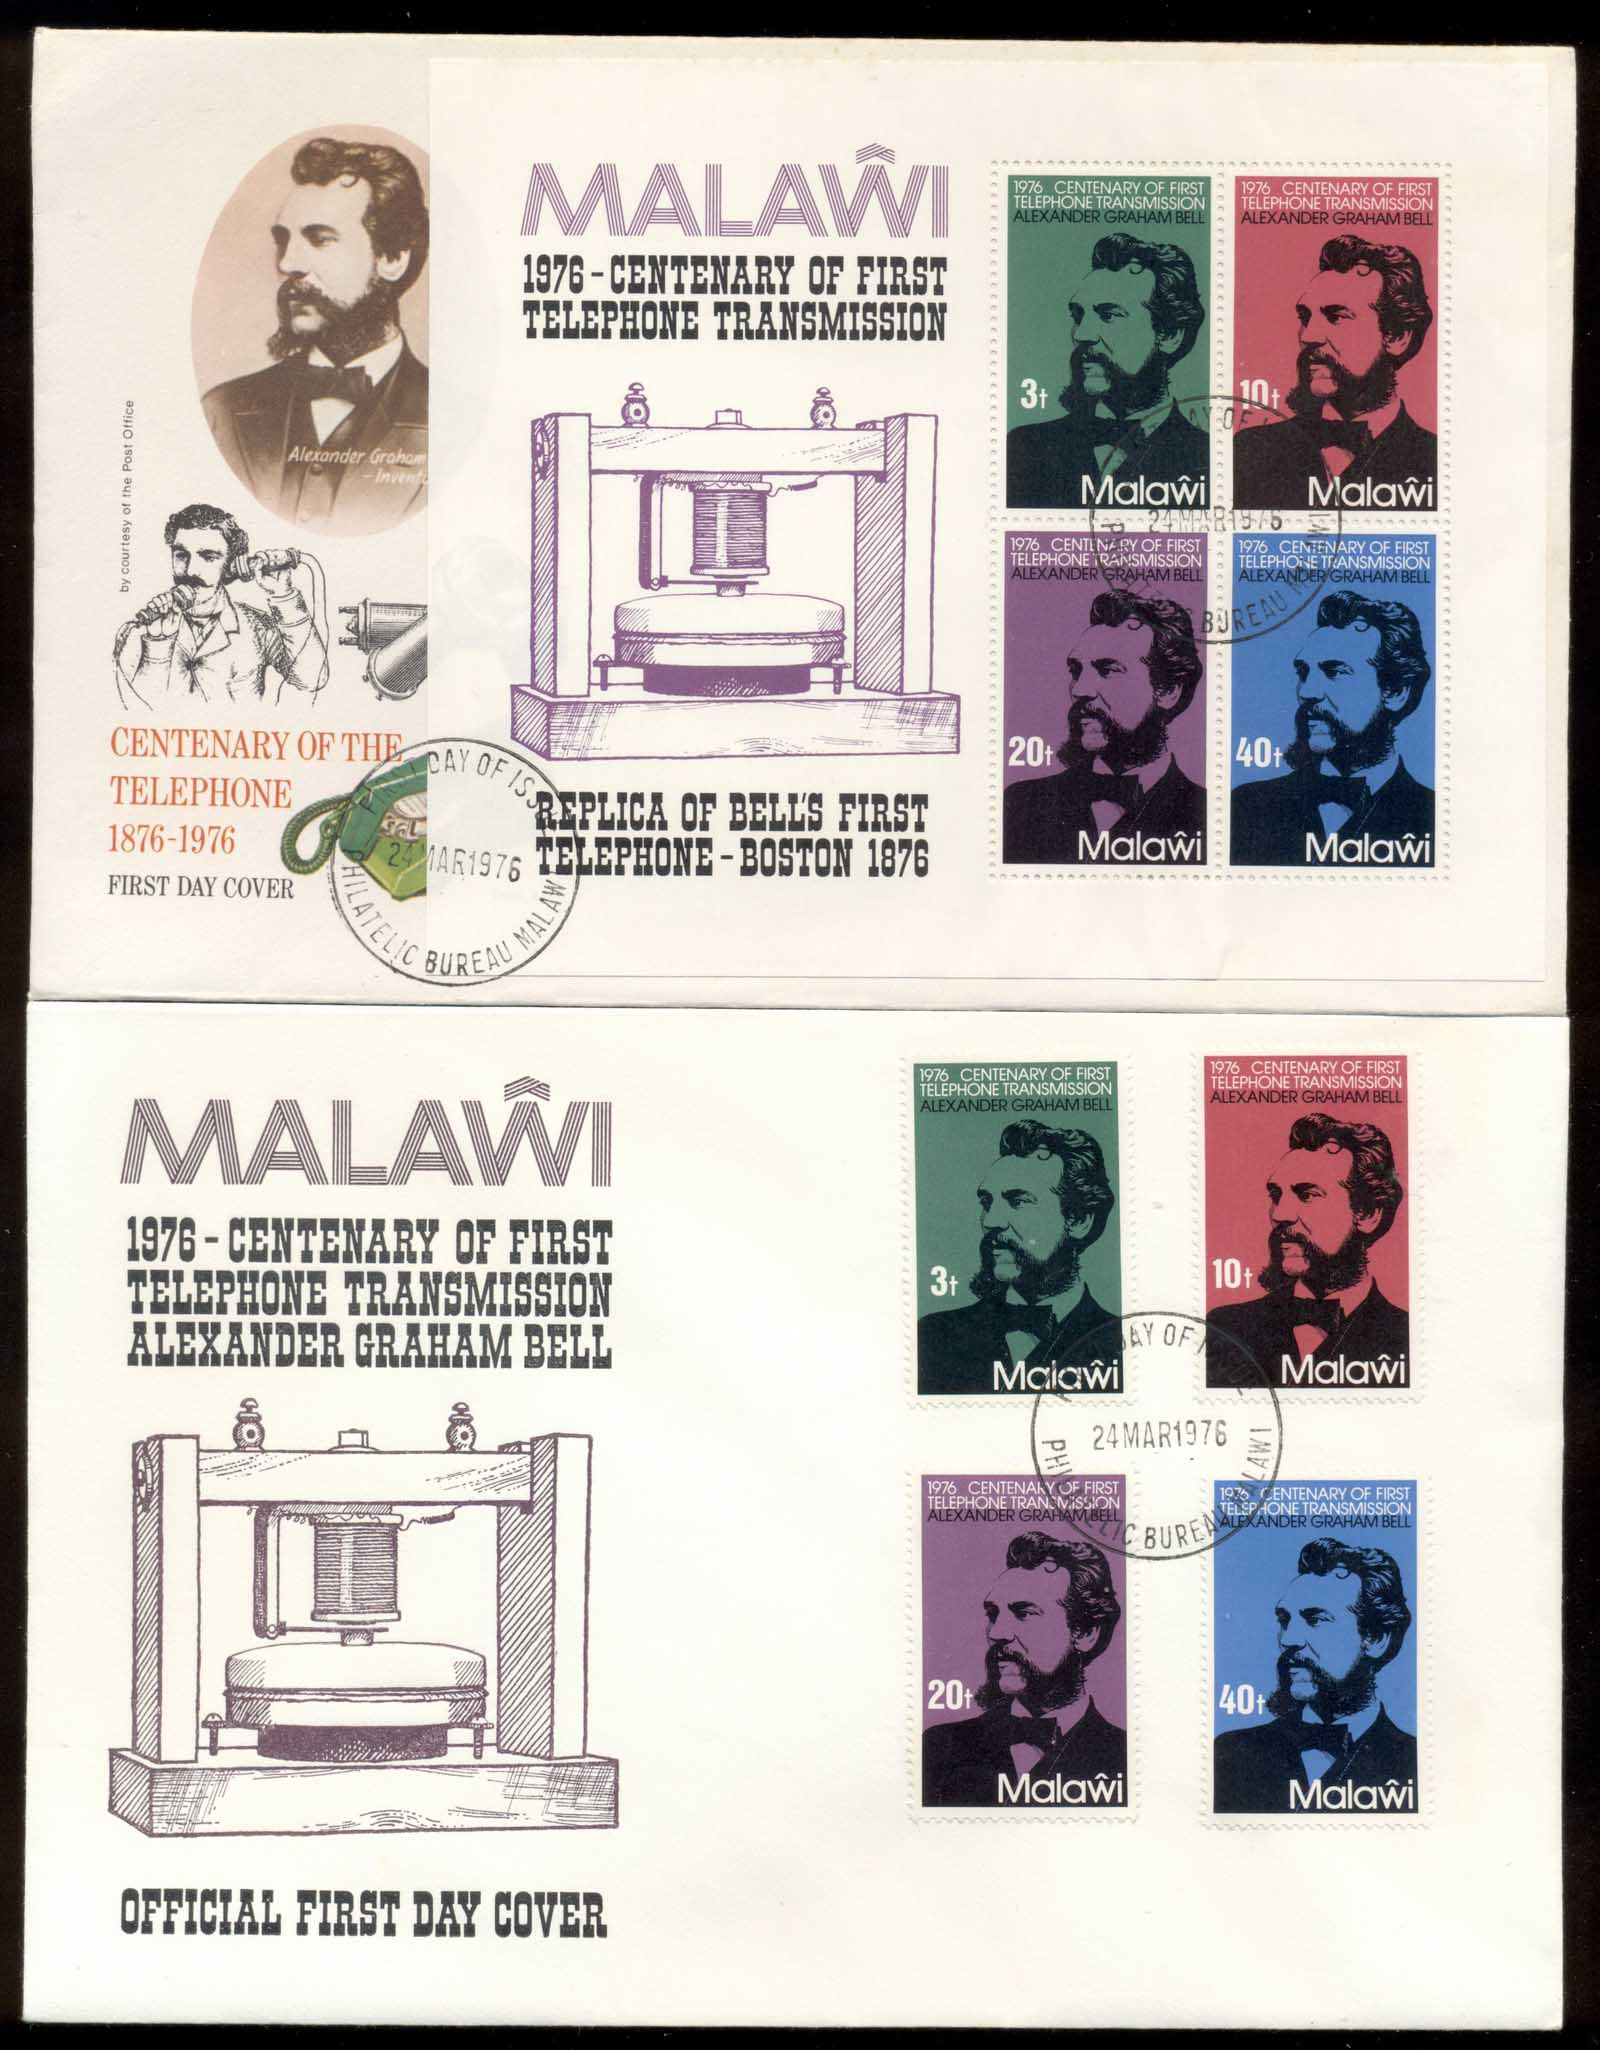 Malawi 1976 Telephone Centenary, Alexander Graham Bell 2x FDC